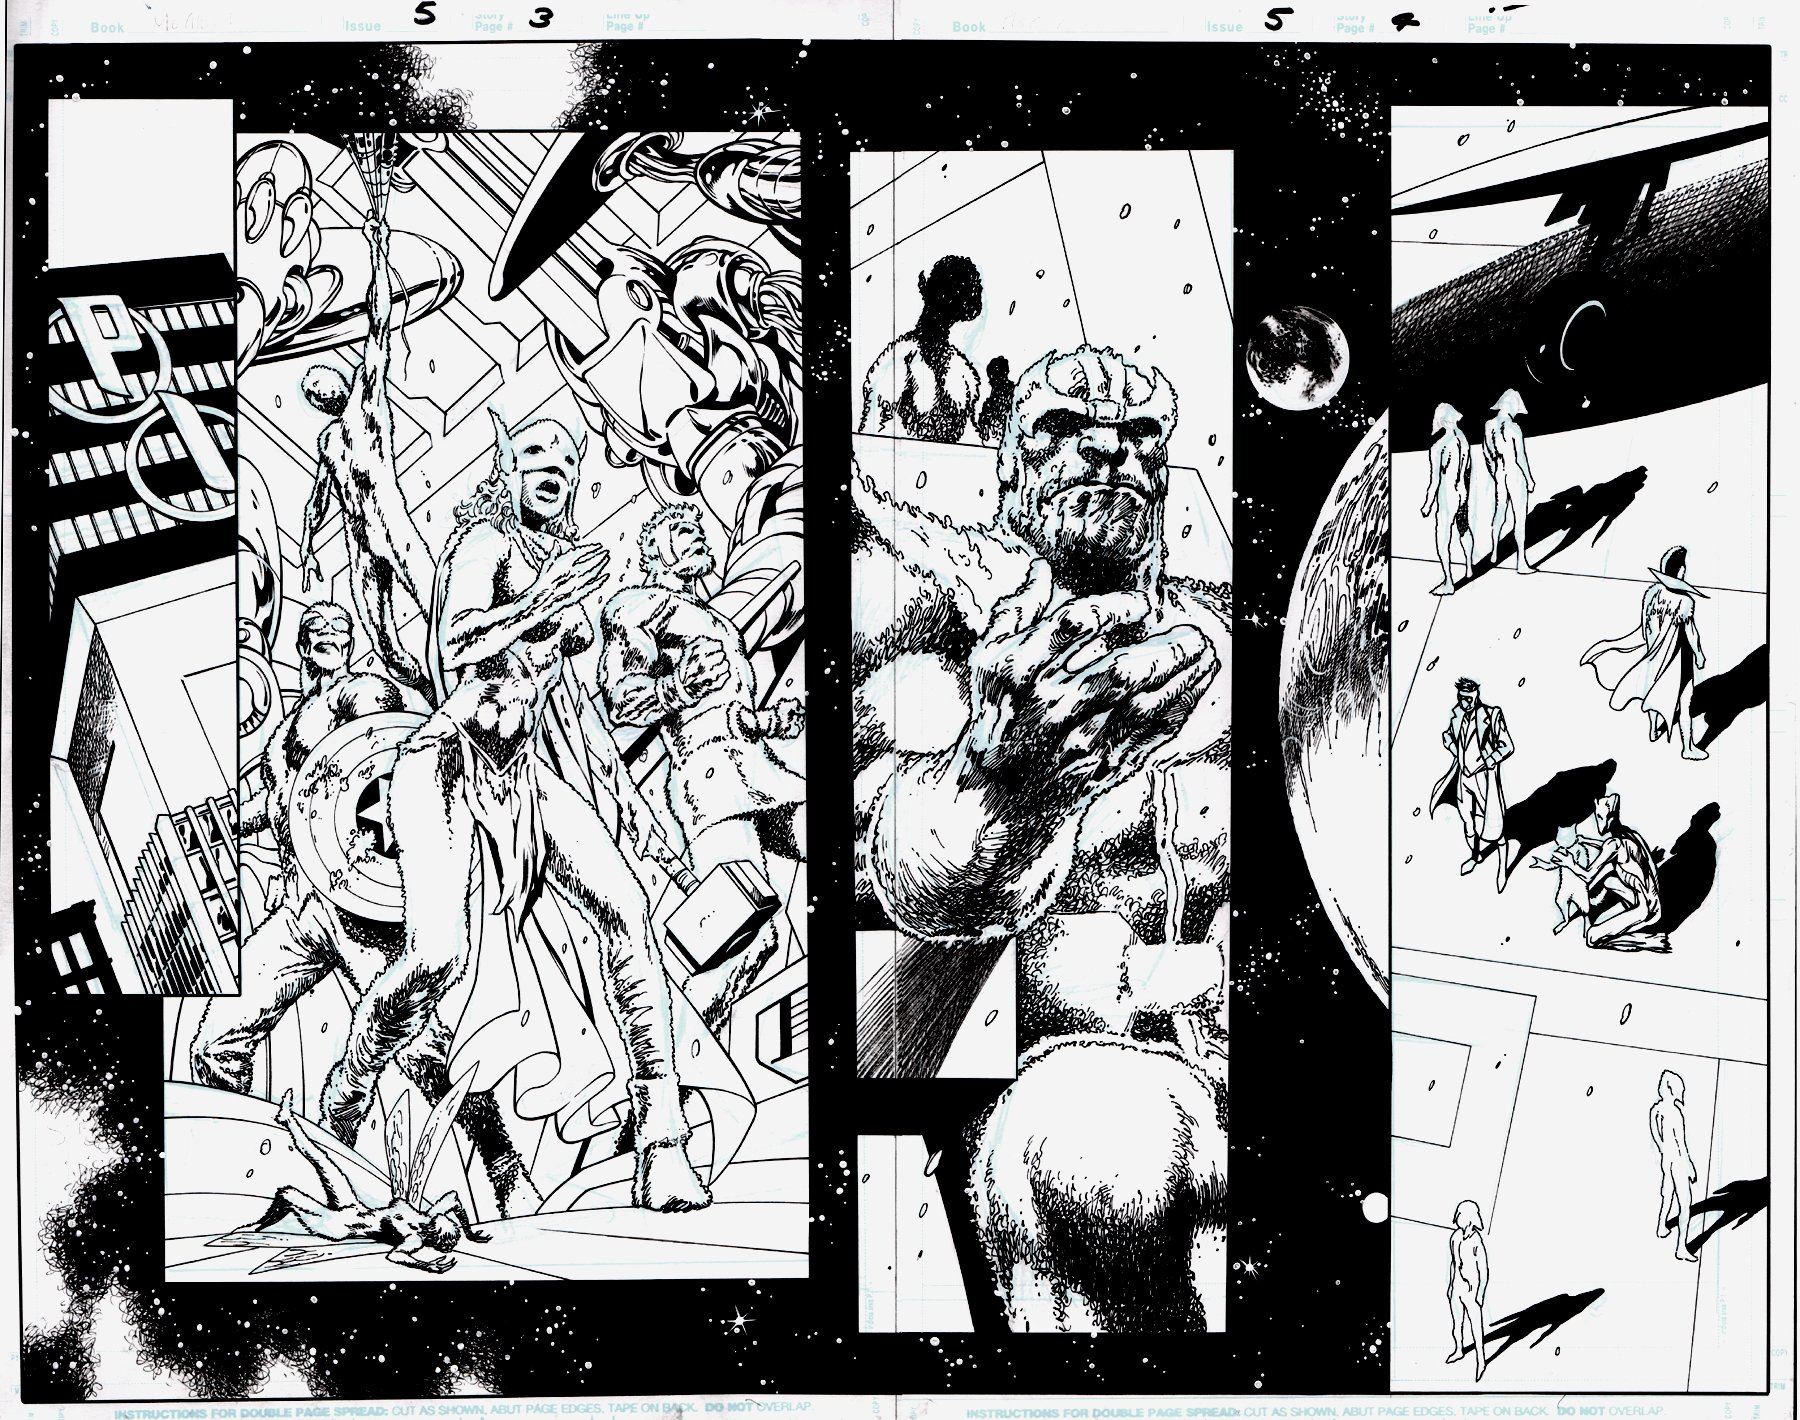 Guardians of the Galaxy: Mother Entropy #5 p 3-4 Double Page SPLASH (AVENGERS, GUARDIANS, THANOS, JANE FOSTER THOR!) 2017